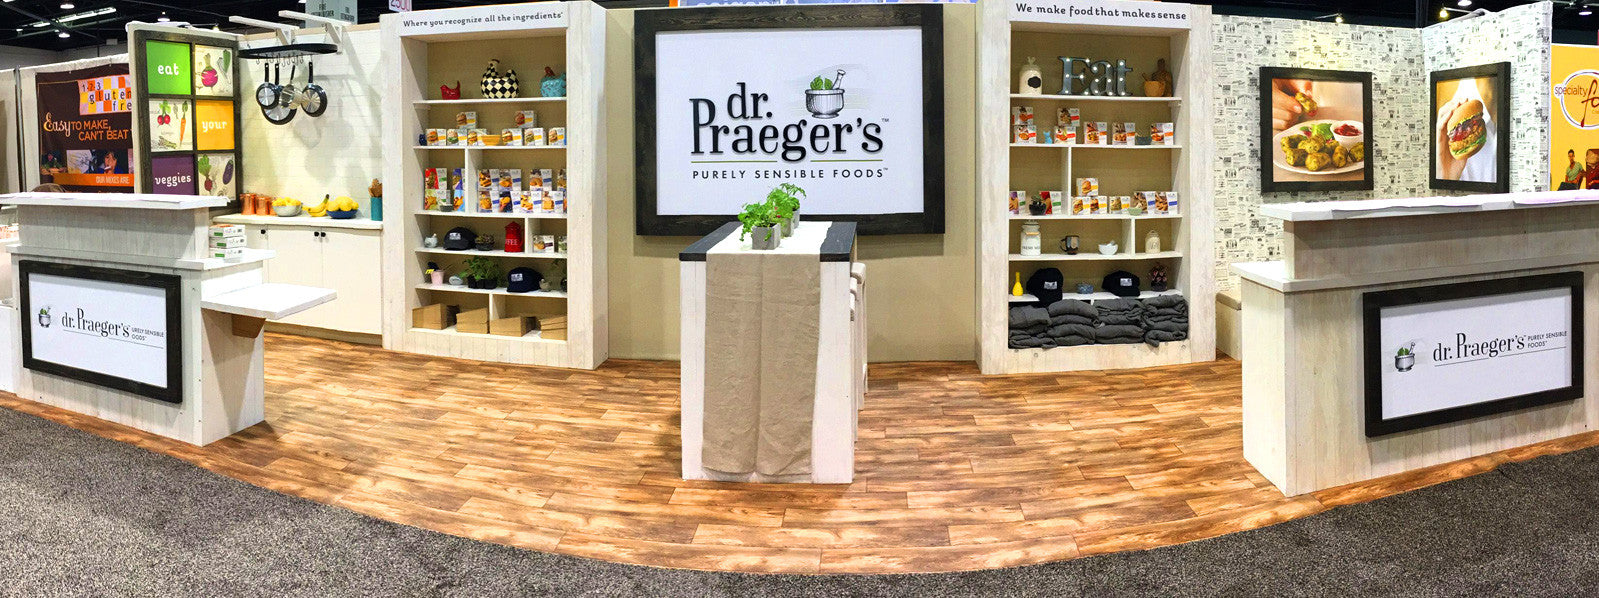 Custom Green Tradeshow Booth Design for Dr Praegers